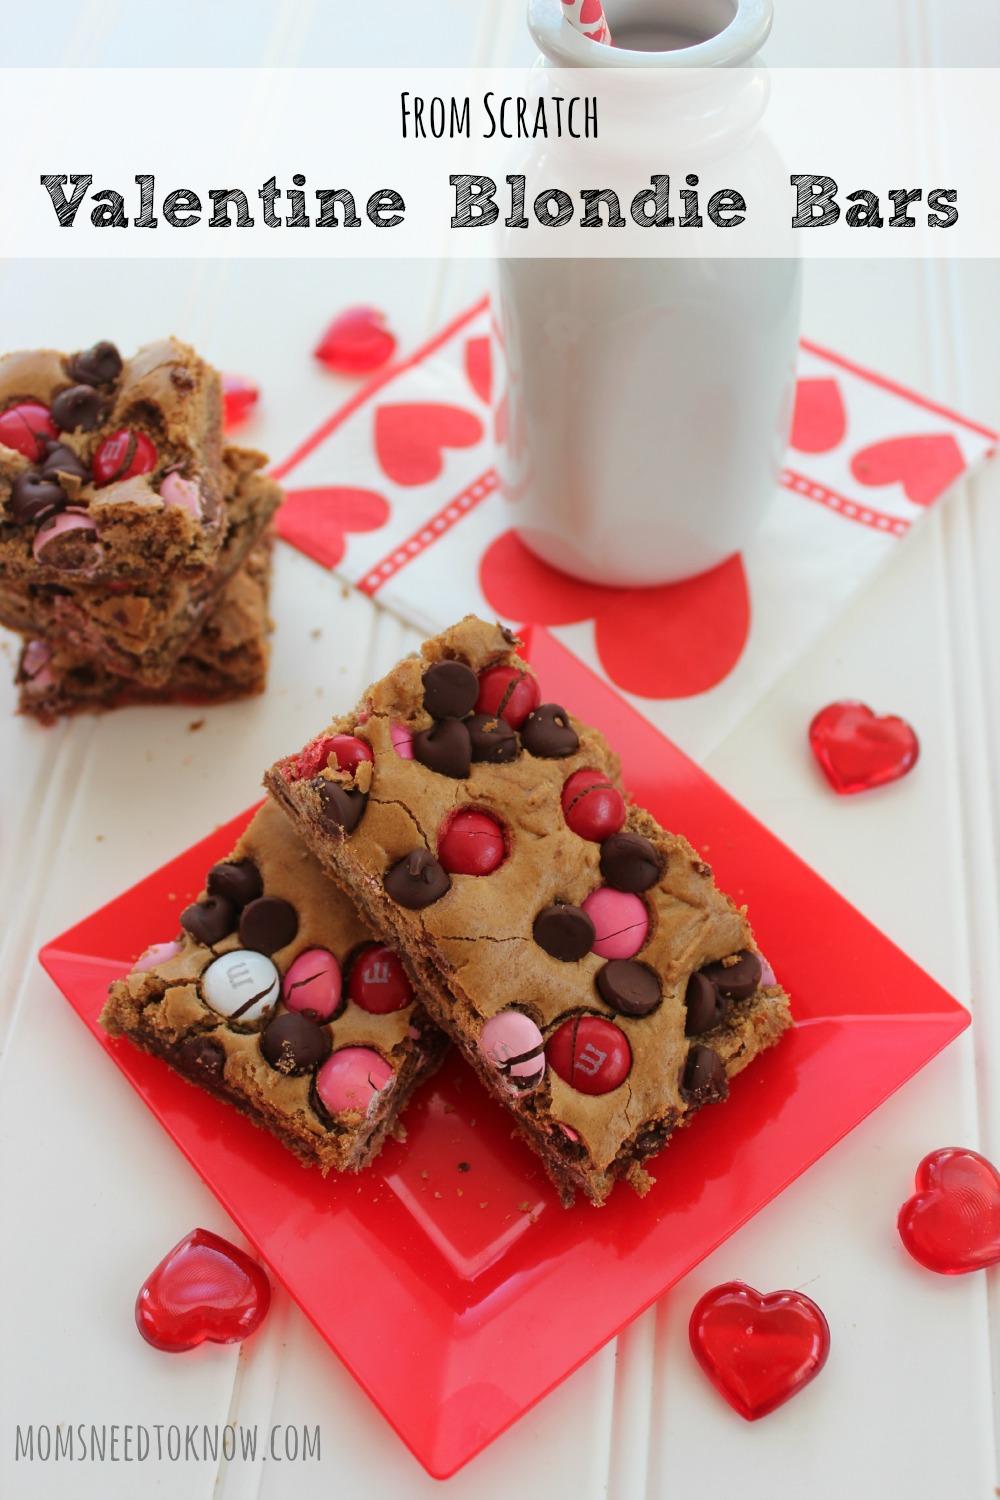 This blondie bars recipe can be customized for any holiday by just changing the color of the candies that you use. A nice change from regular brownies!